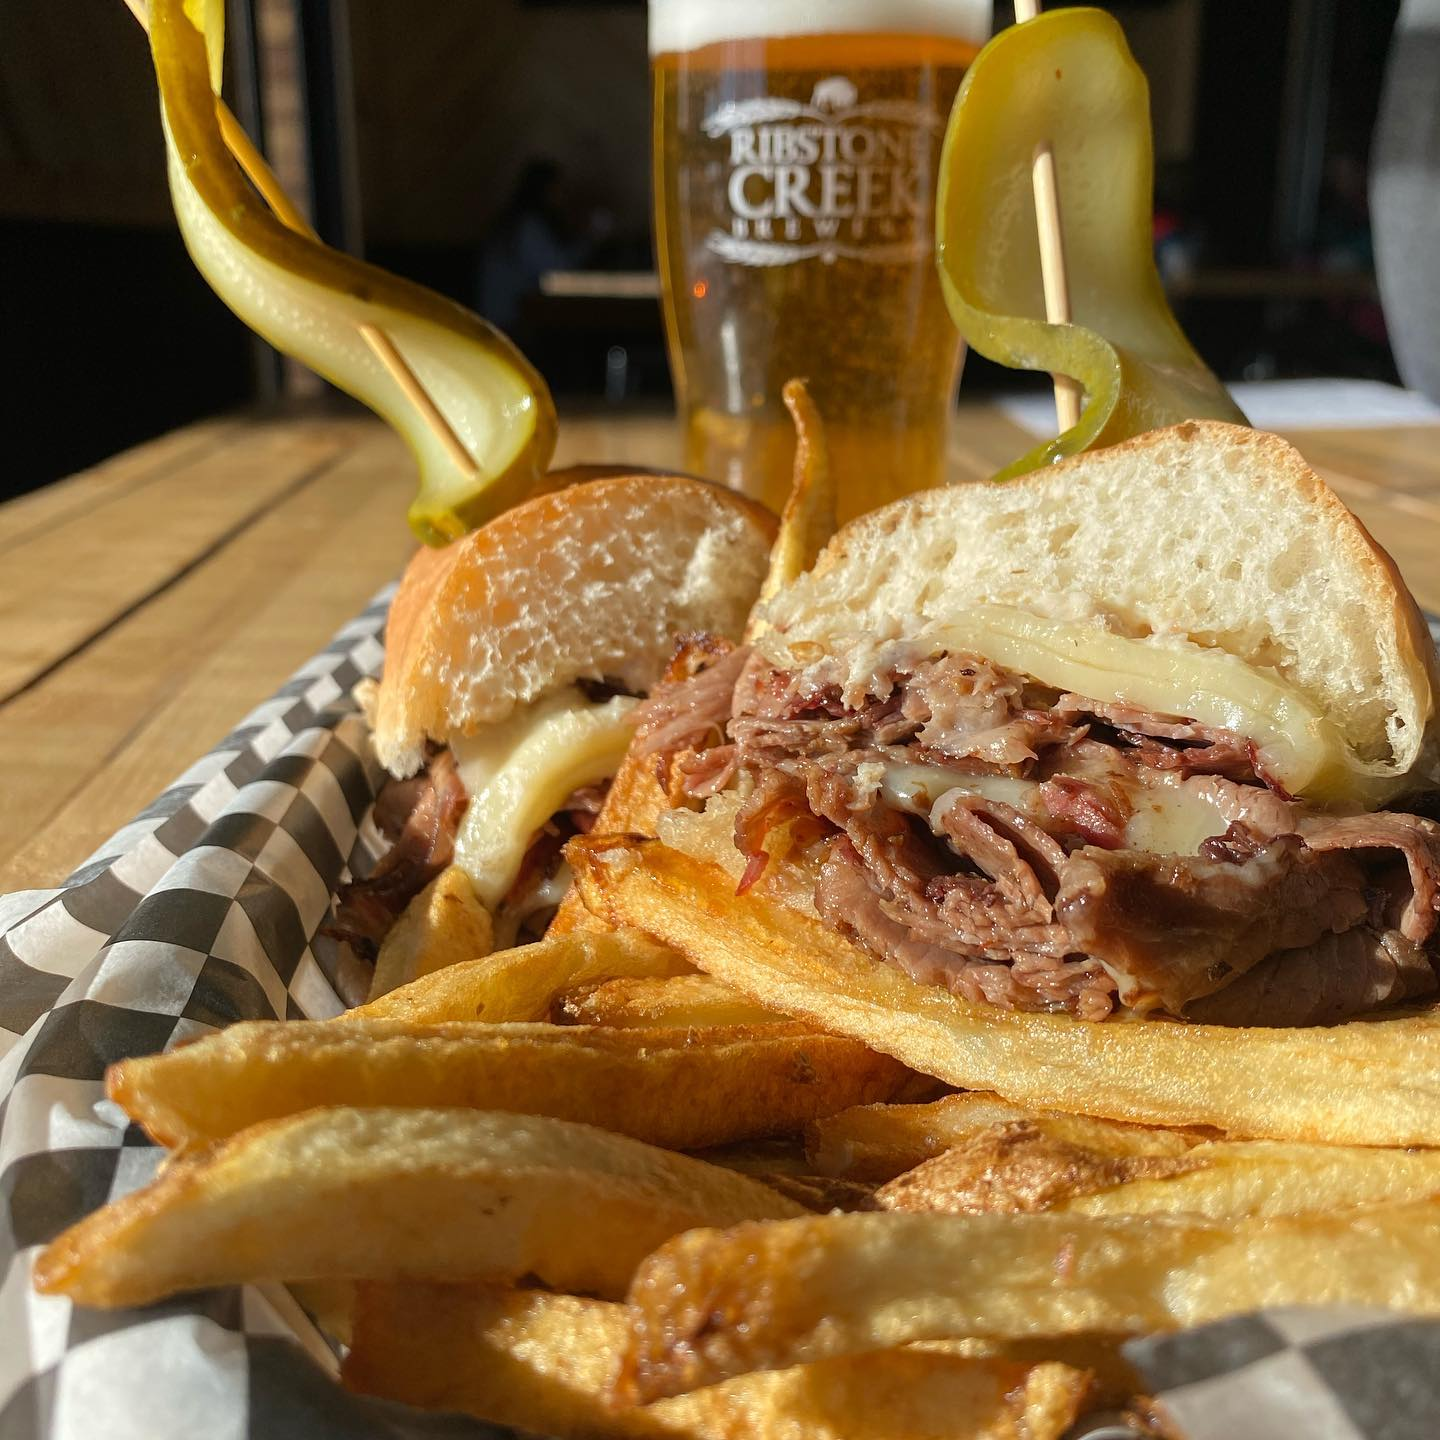 A beef melt sandwich with pickles and fries in front of a pint of beer.